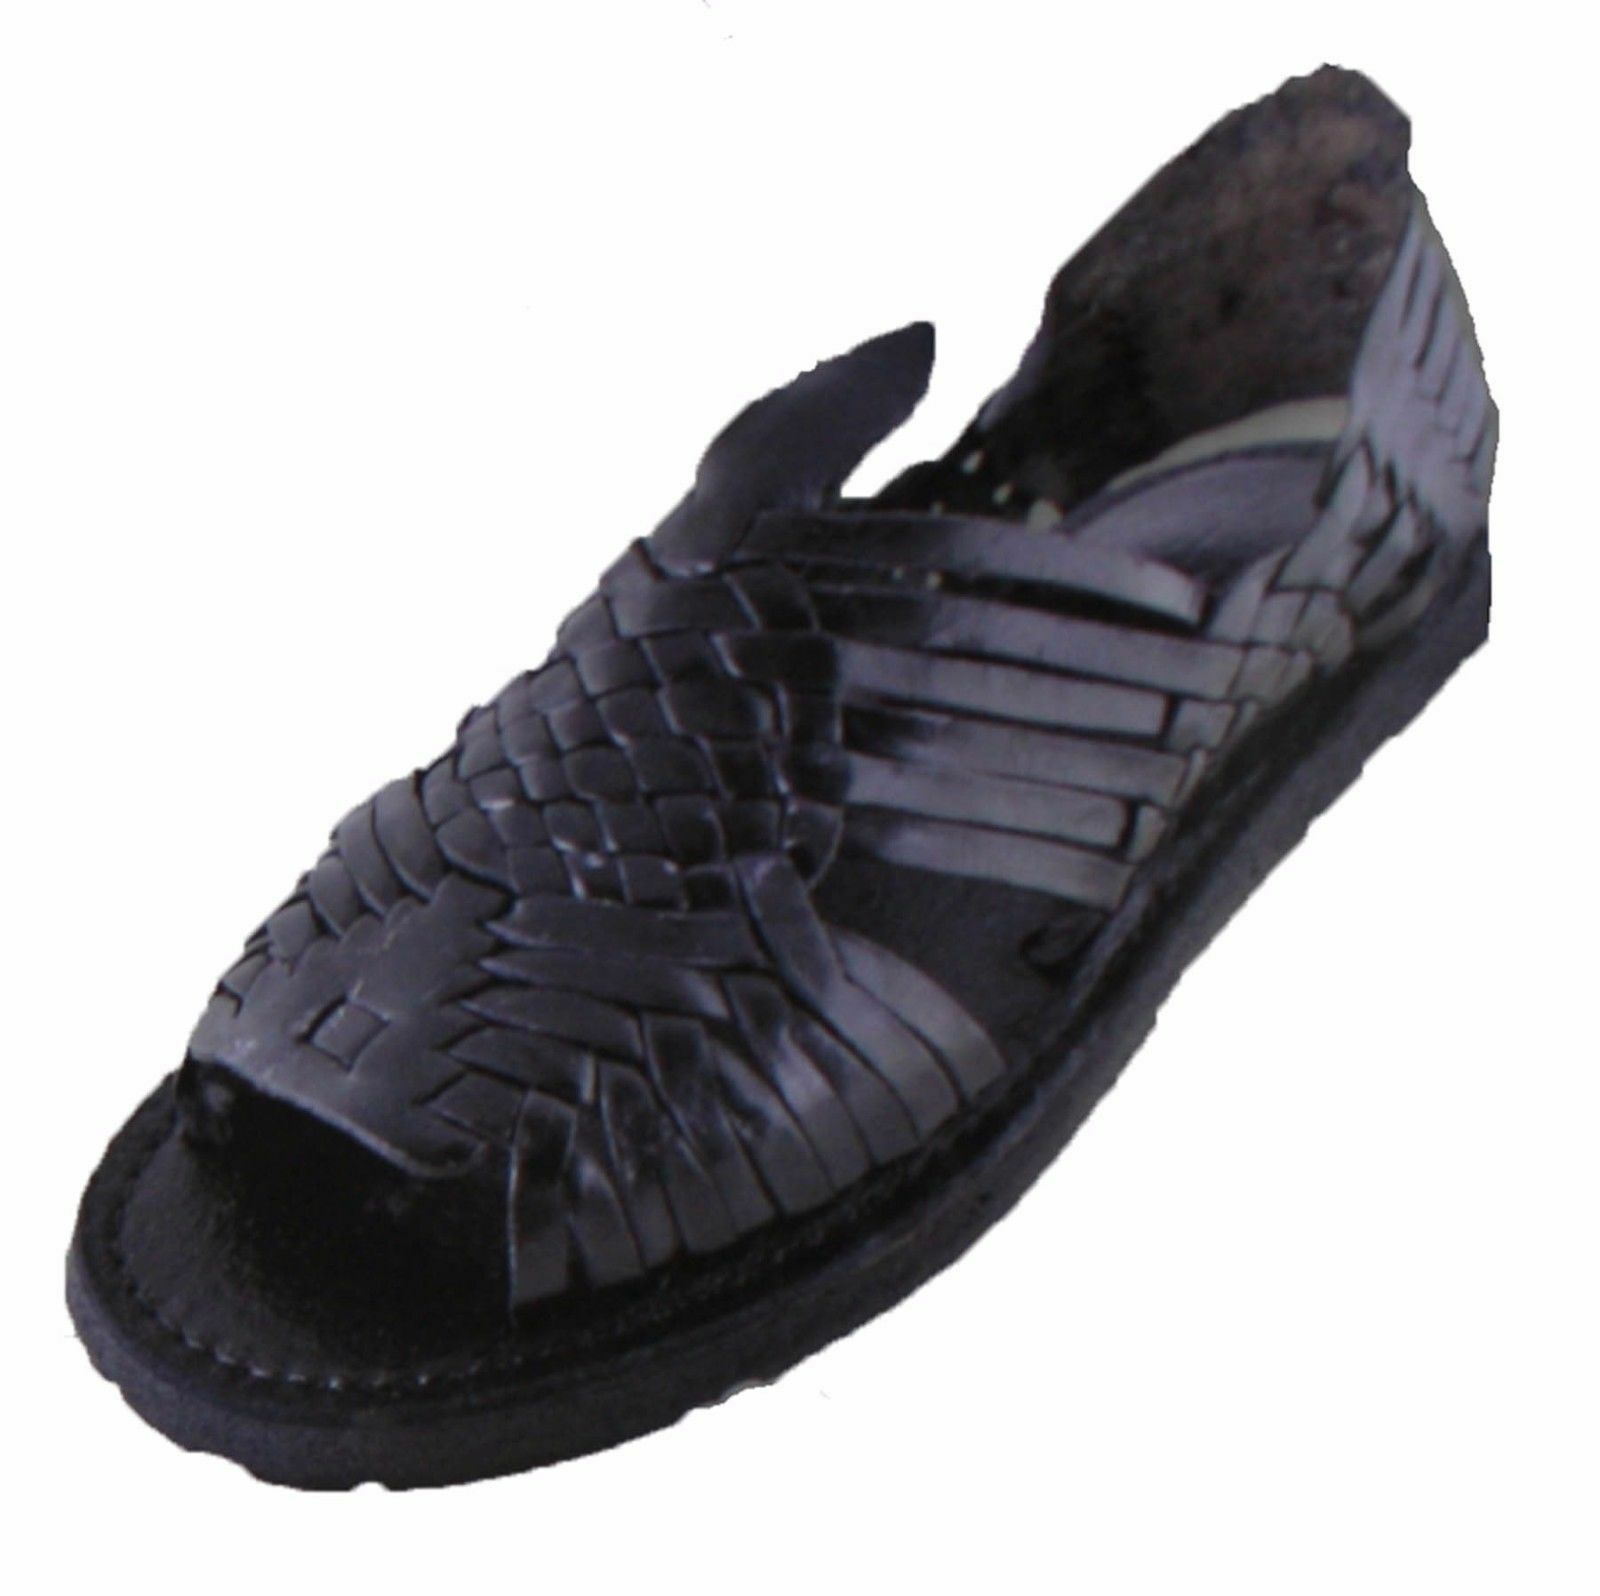 b30cbd741c20 ... MEXICAN SANDALS Men s - Authentic PACHUCO Huarache Sandals - Men s ALL  COLORS ALL SIZES 77267f ...